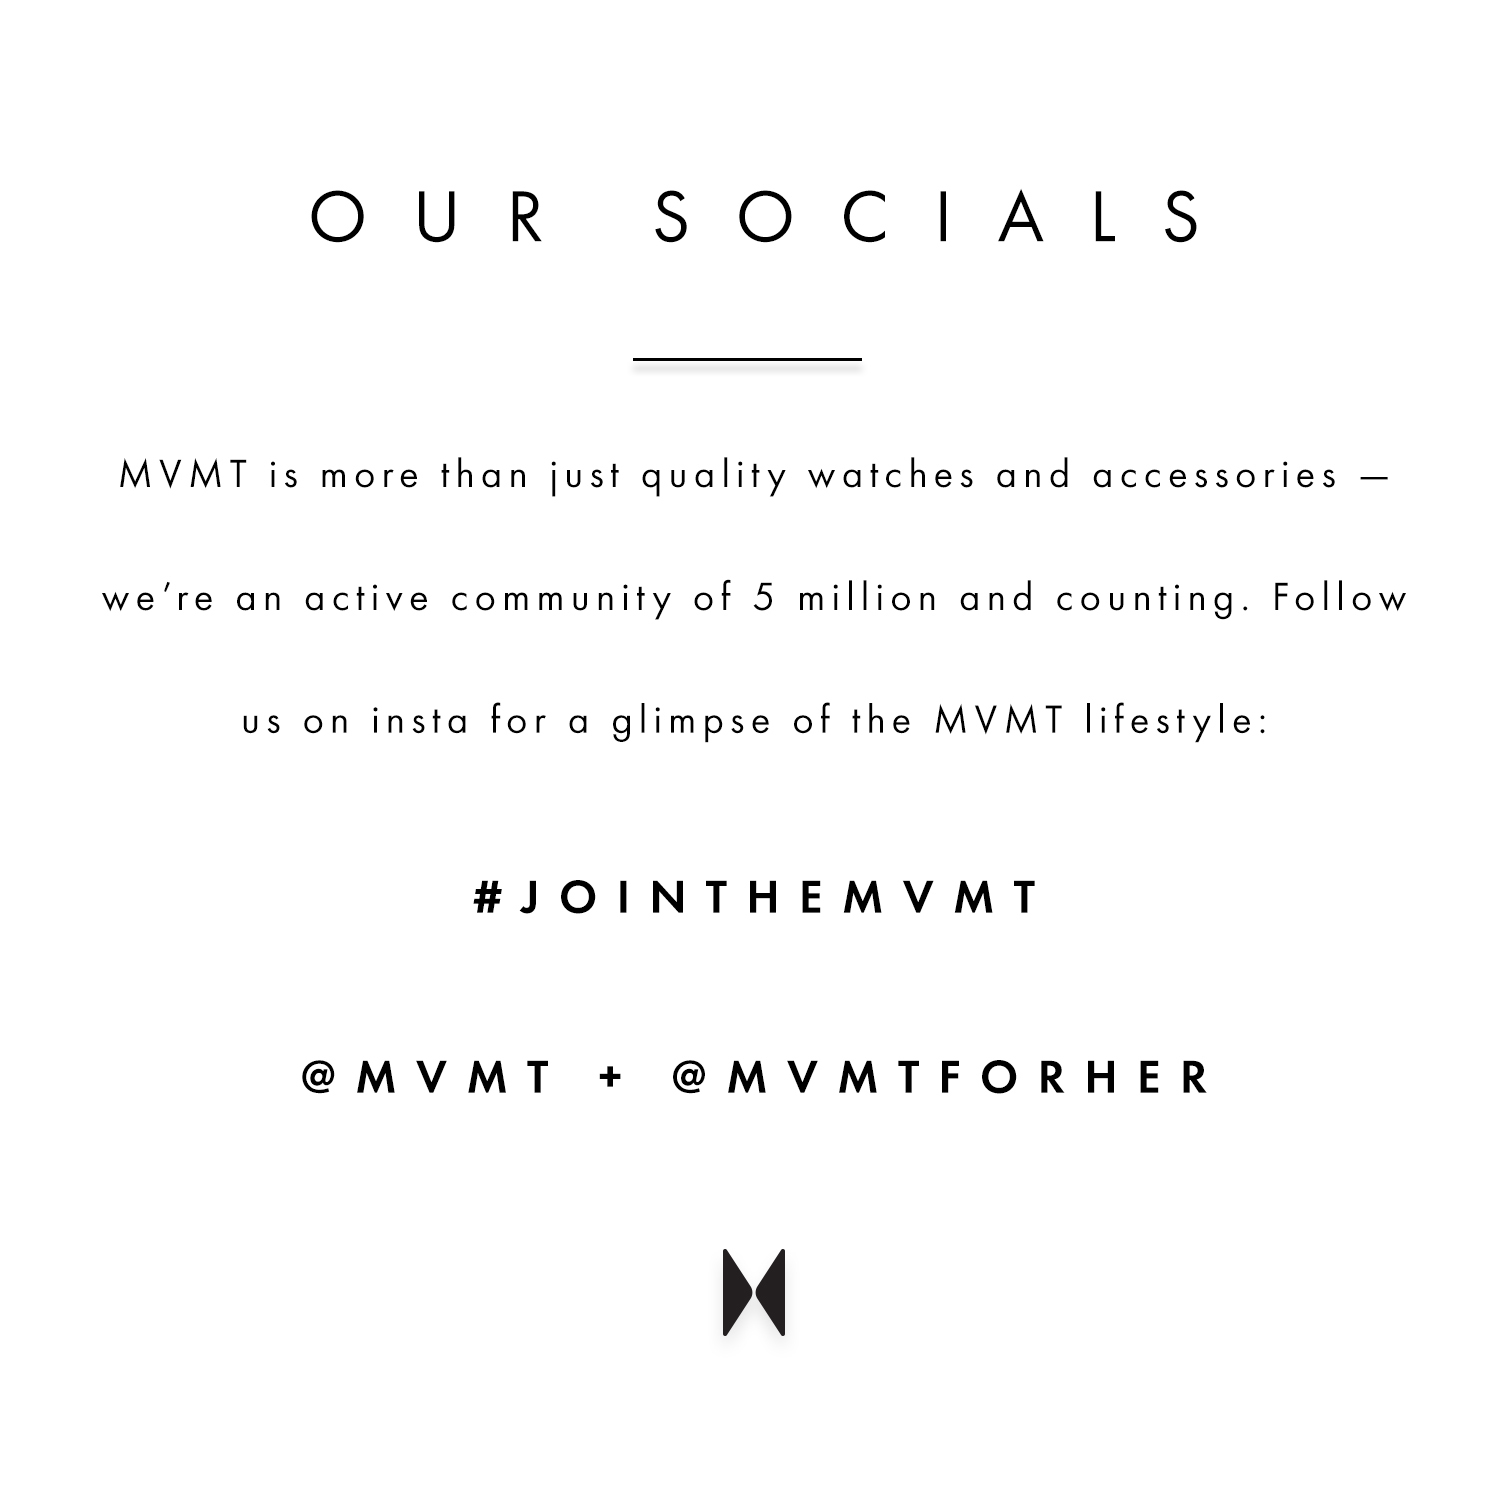 Our socials. MVMT is more than just quality watches and accessories - we're an active community of 5 million and counting. Follow us on insta for a glimpse of the MVMT lifestyle: #jointhemvmt @mvmt + @mvmtforher